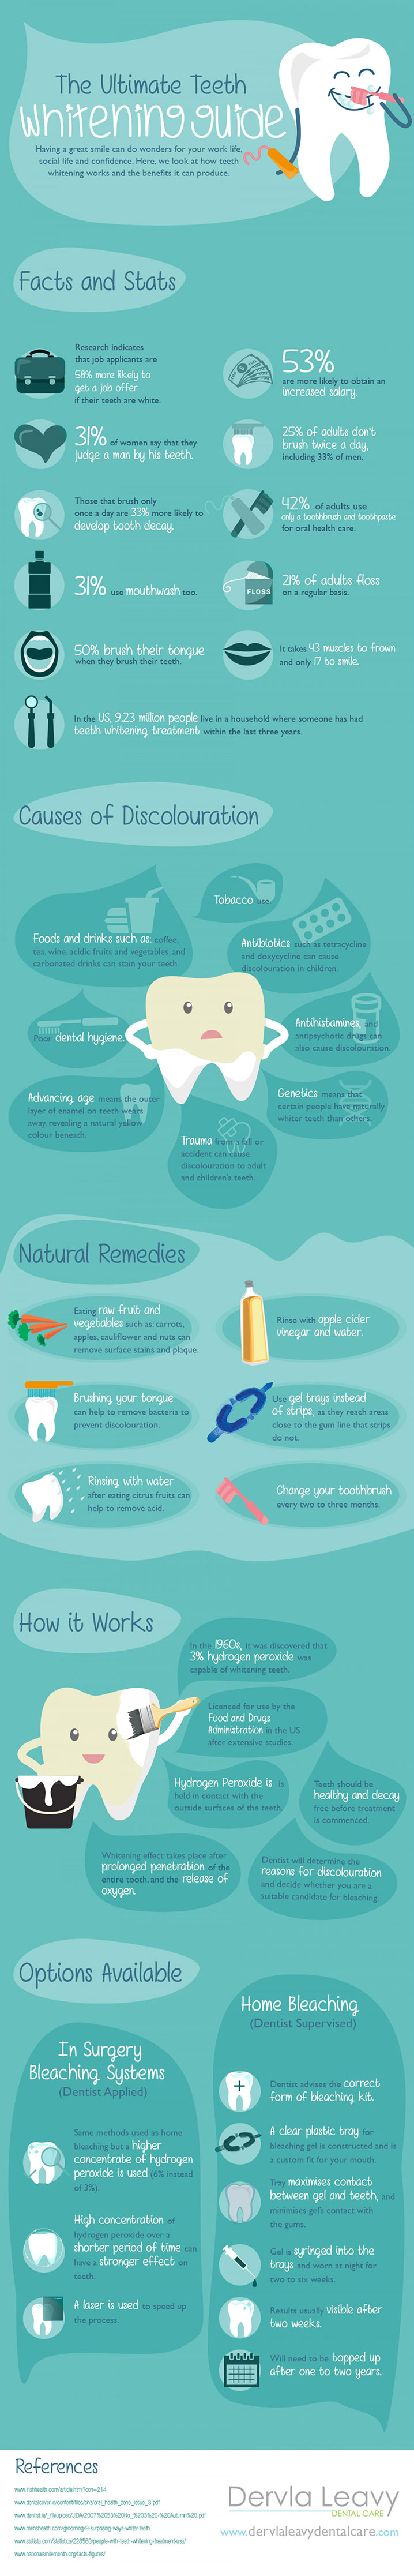 the-ultimate-teeth-whitening-guide